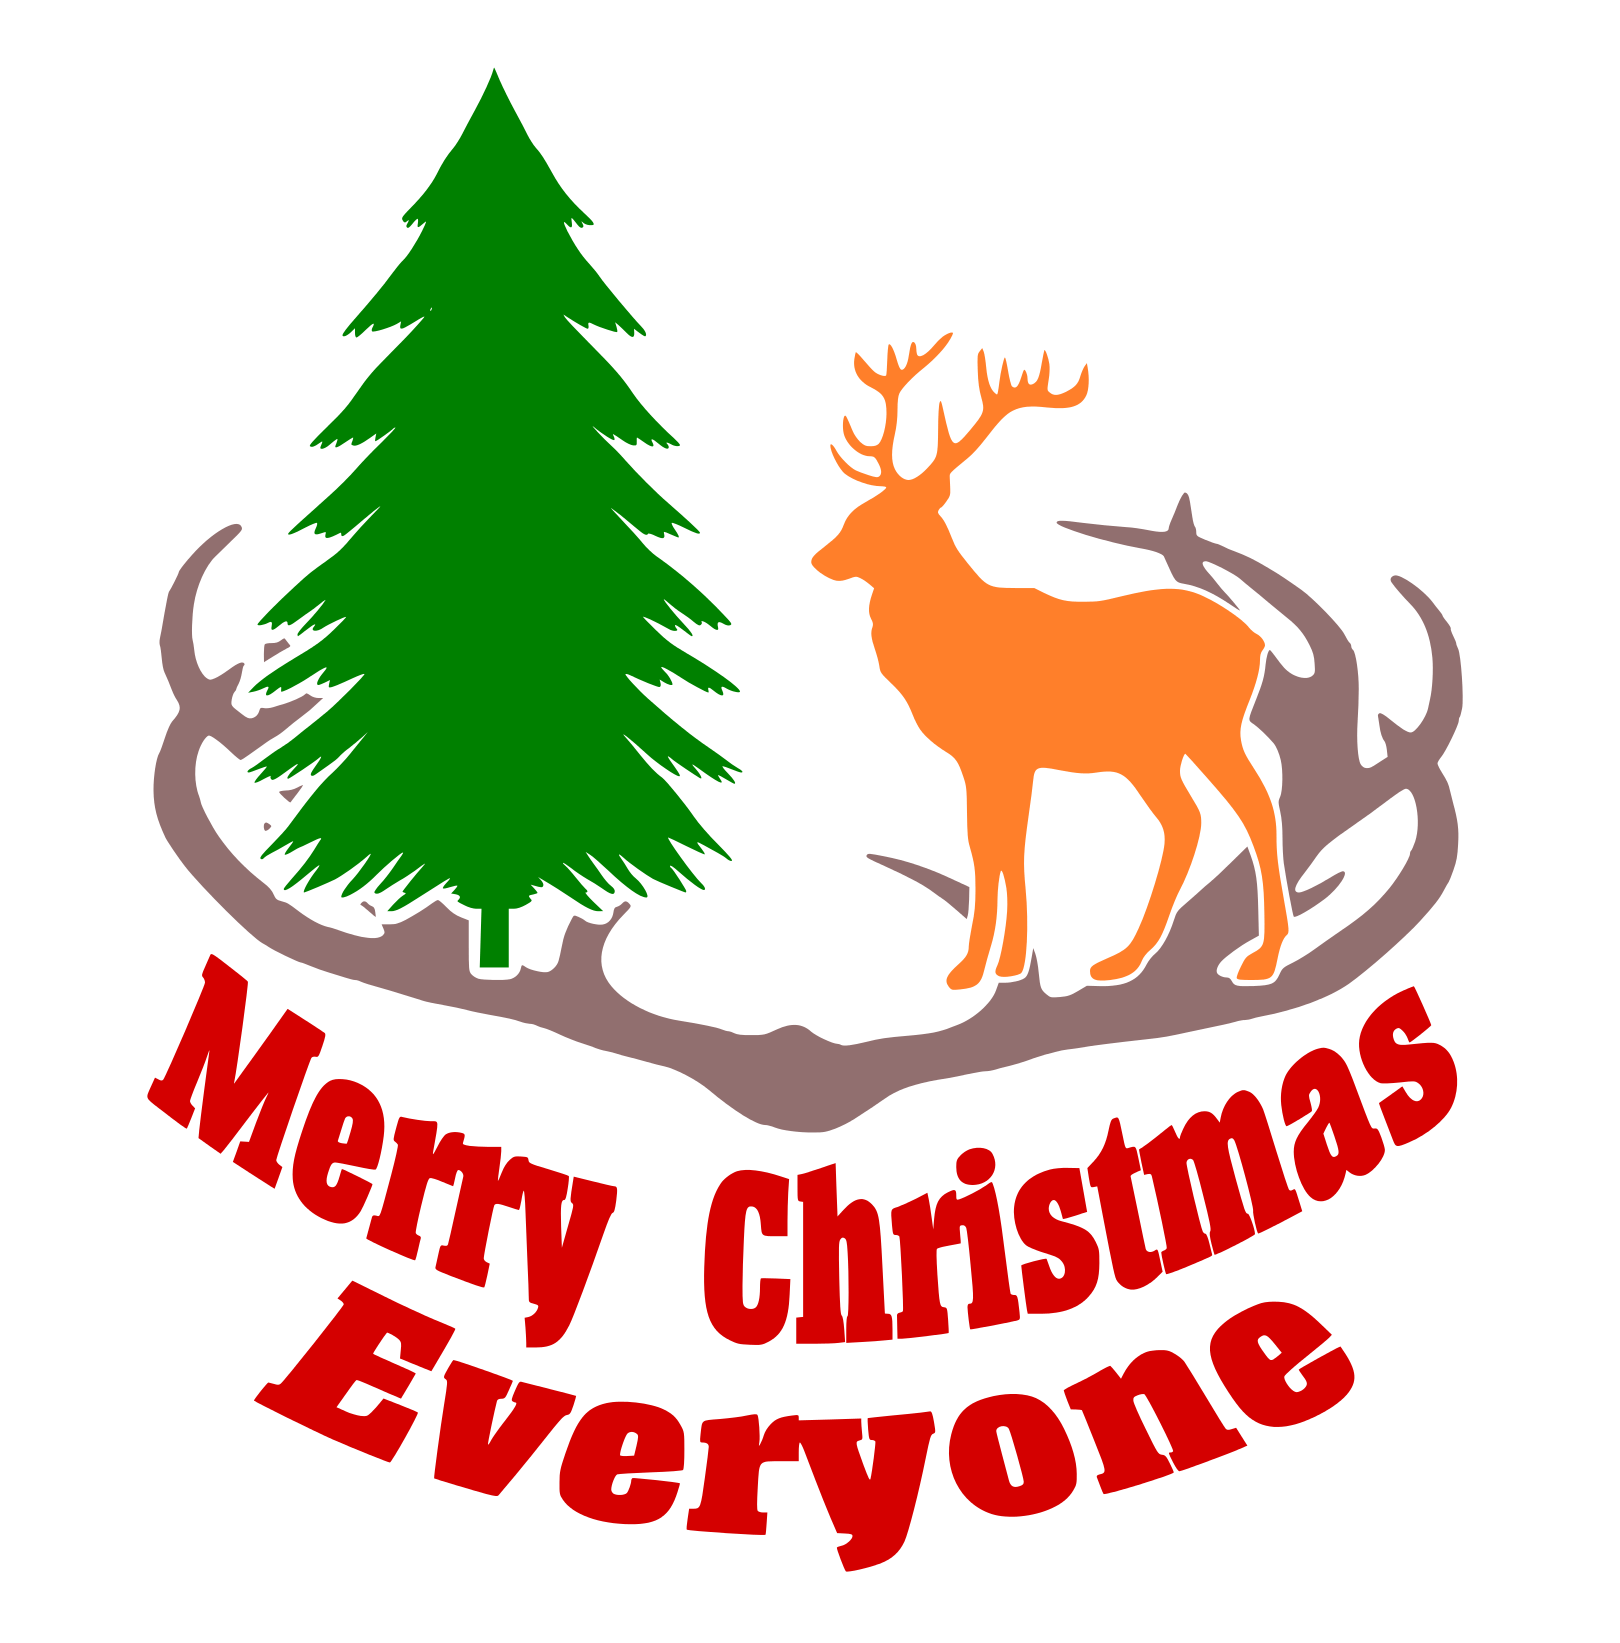 Free Merry Christmas Everyone SVG File Merry christmas